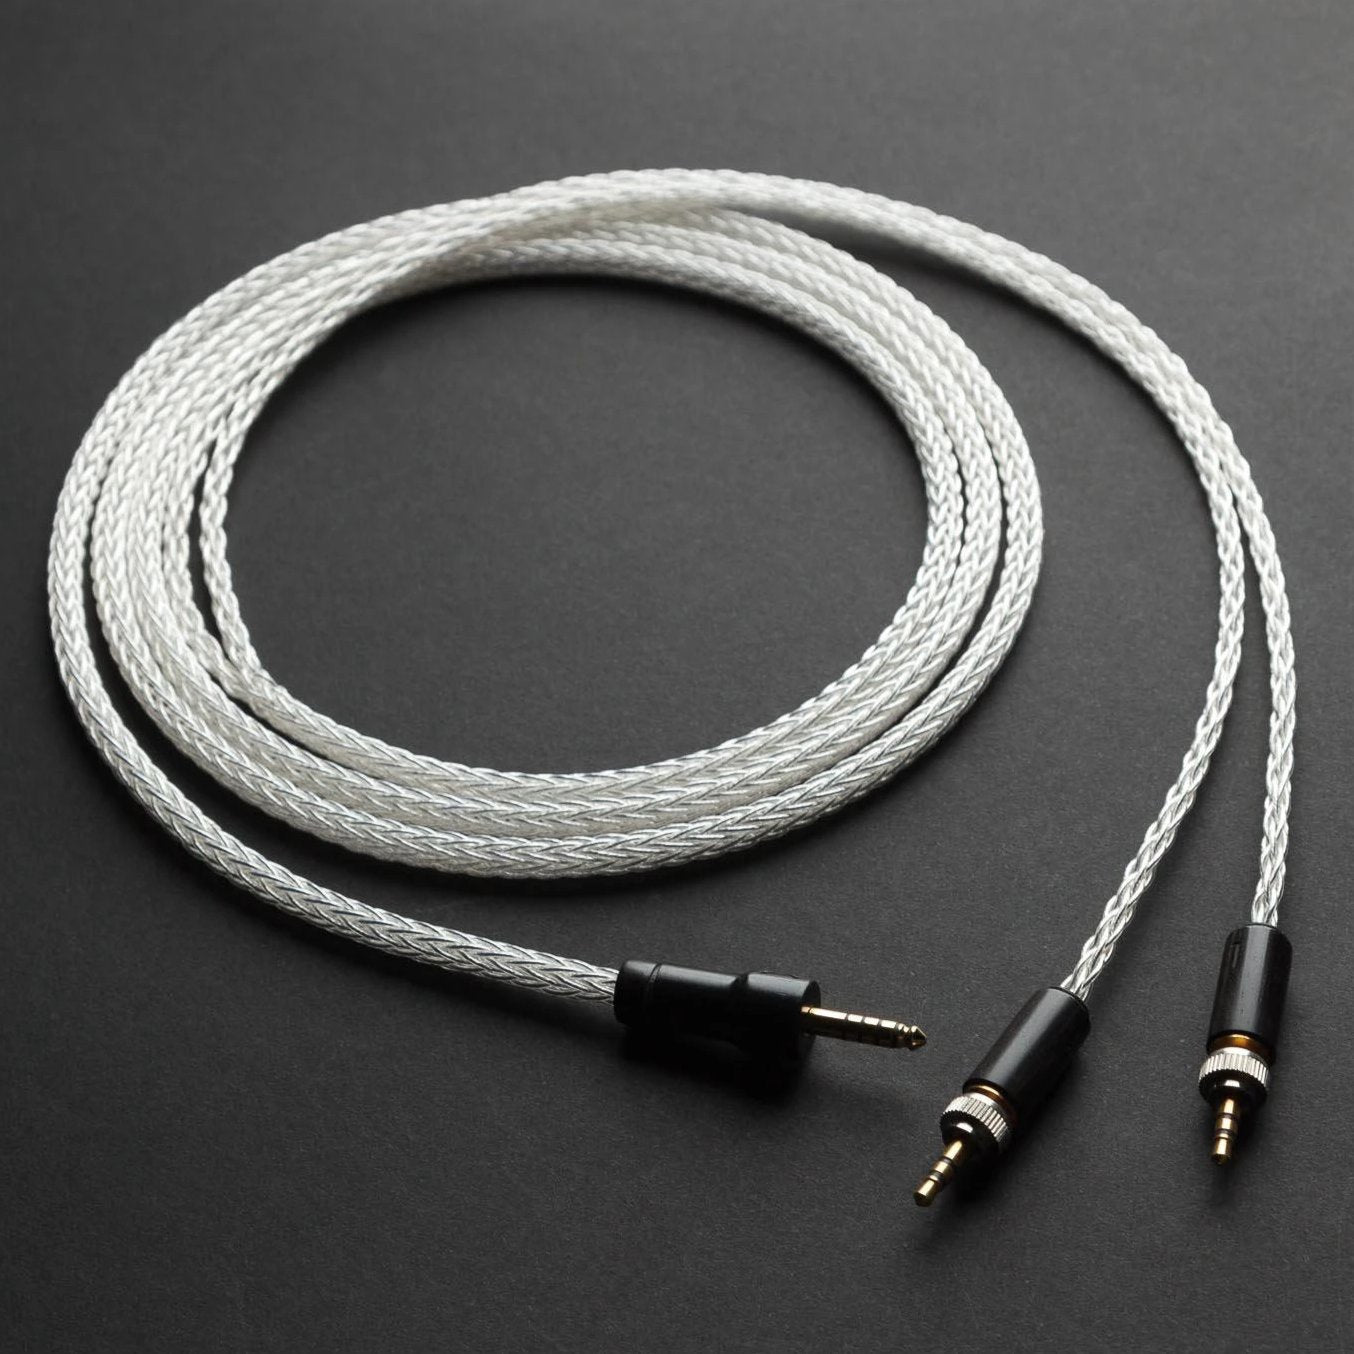 Kimber Kable Axios Silver Headphone Cable